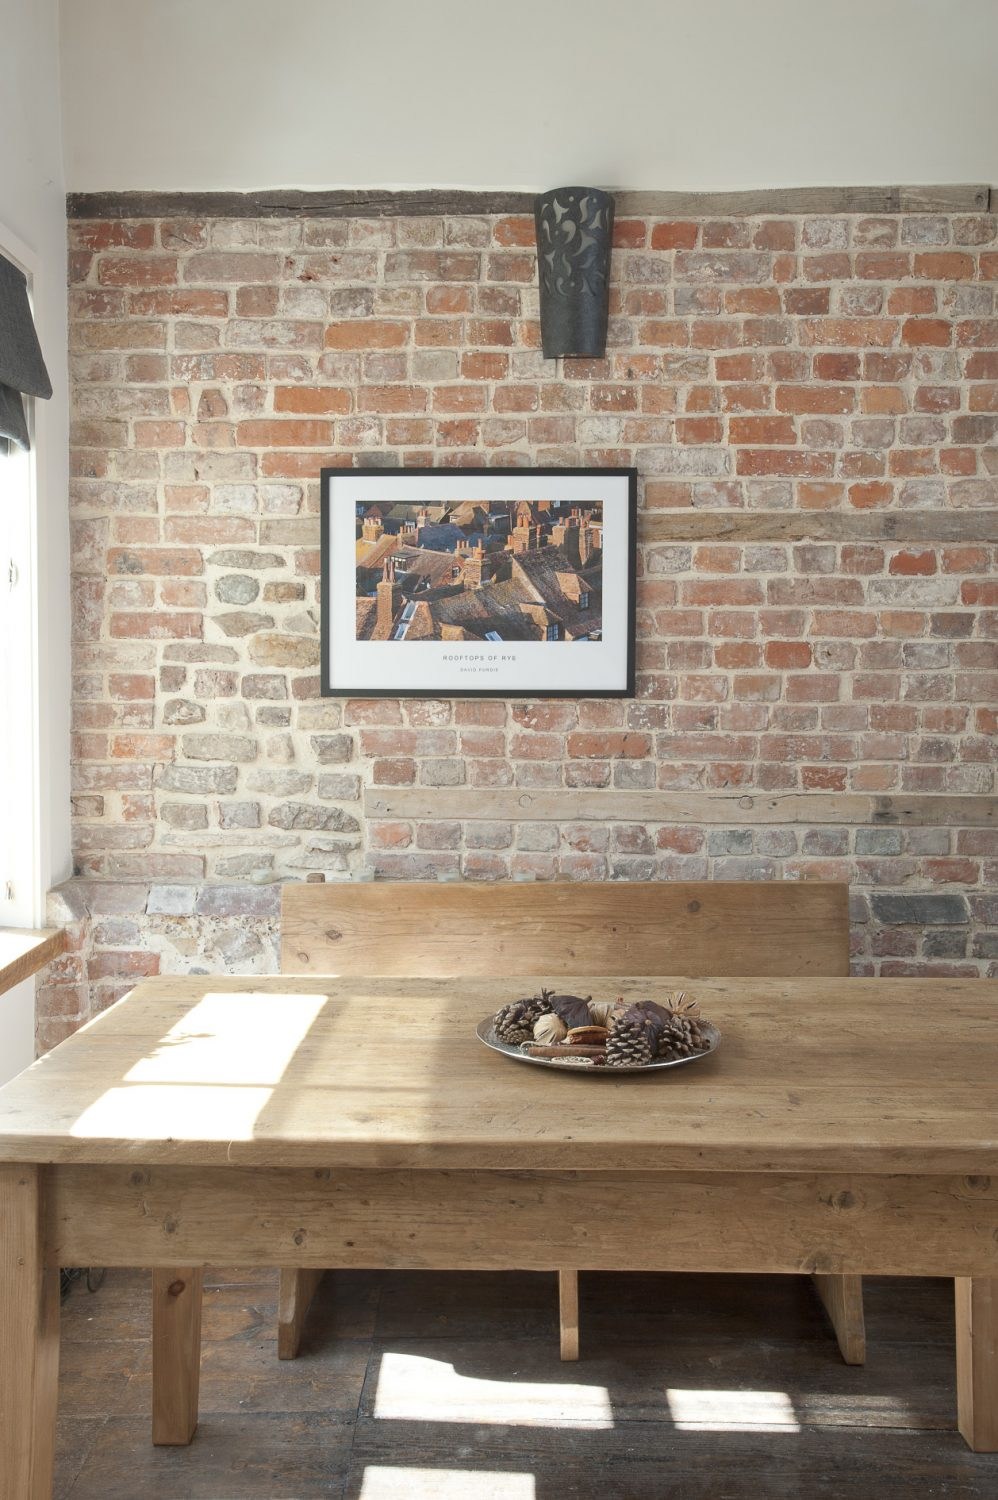 In one corner of the reception room stands a long scrubbed pine refectory table unadorned apart from a bowl of fragrant pine cones and cinnamon sticks. Set against the bare brick wall, it has an honest simplicity.